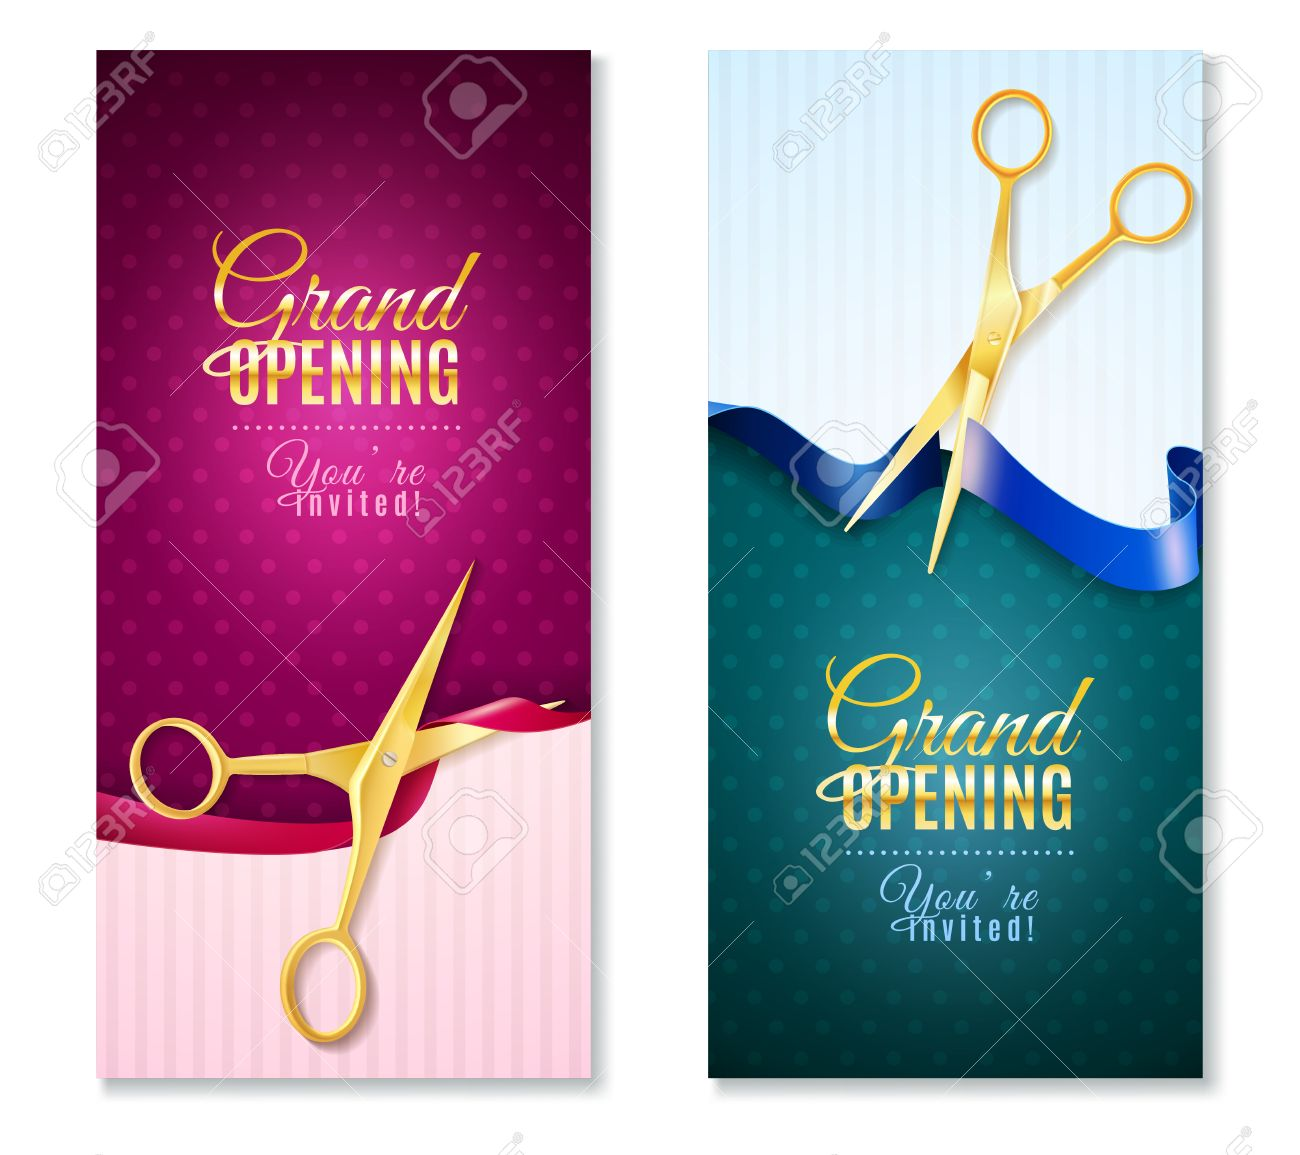 Grand opening invitation vertical banners set with ribbon grand opening invitation vertical banners set with ribbon realistic isolated vector illustration stock vector 58513524 stopboris Image collections